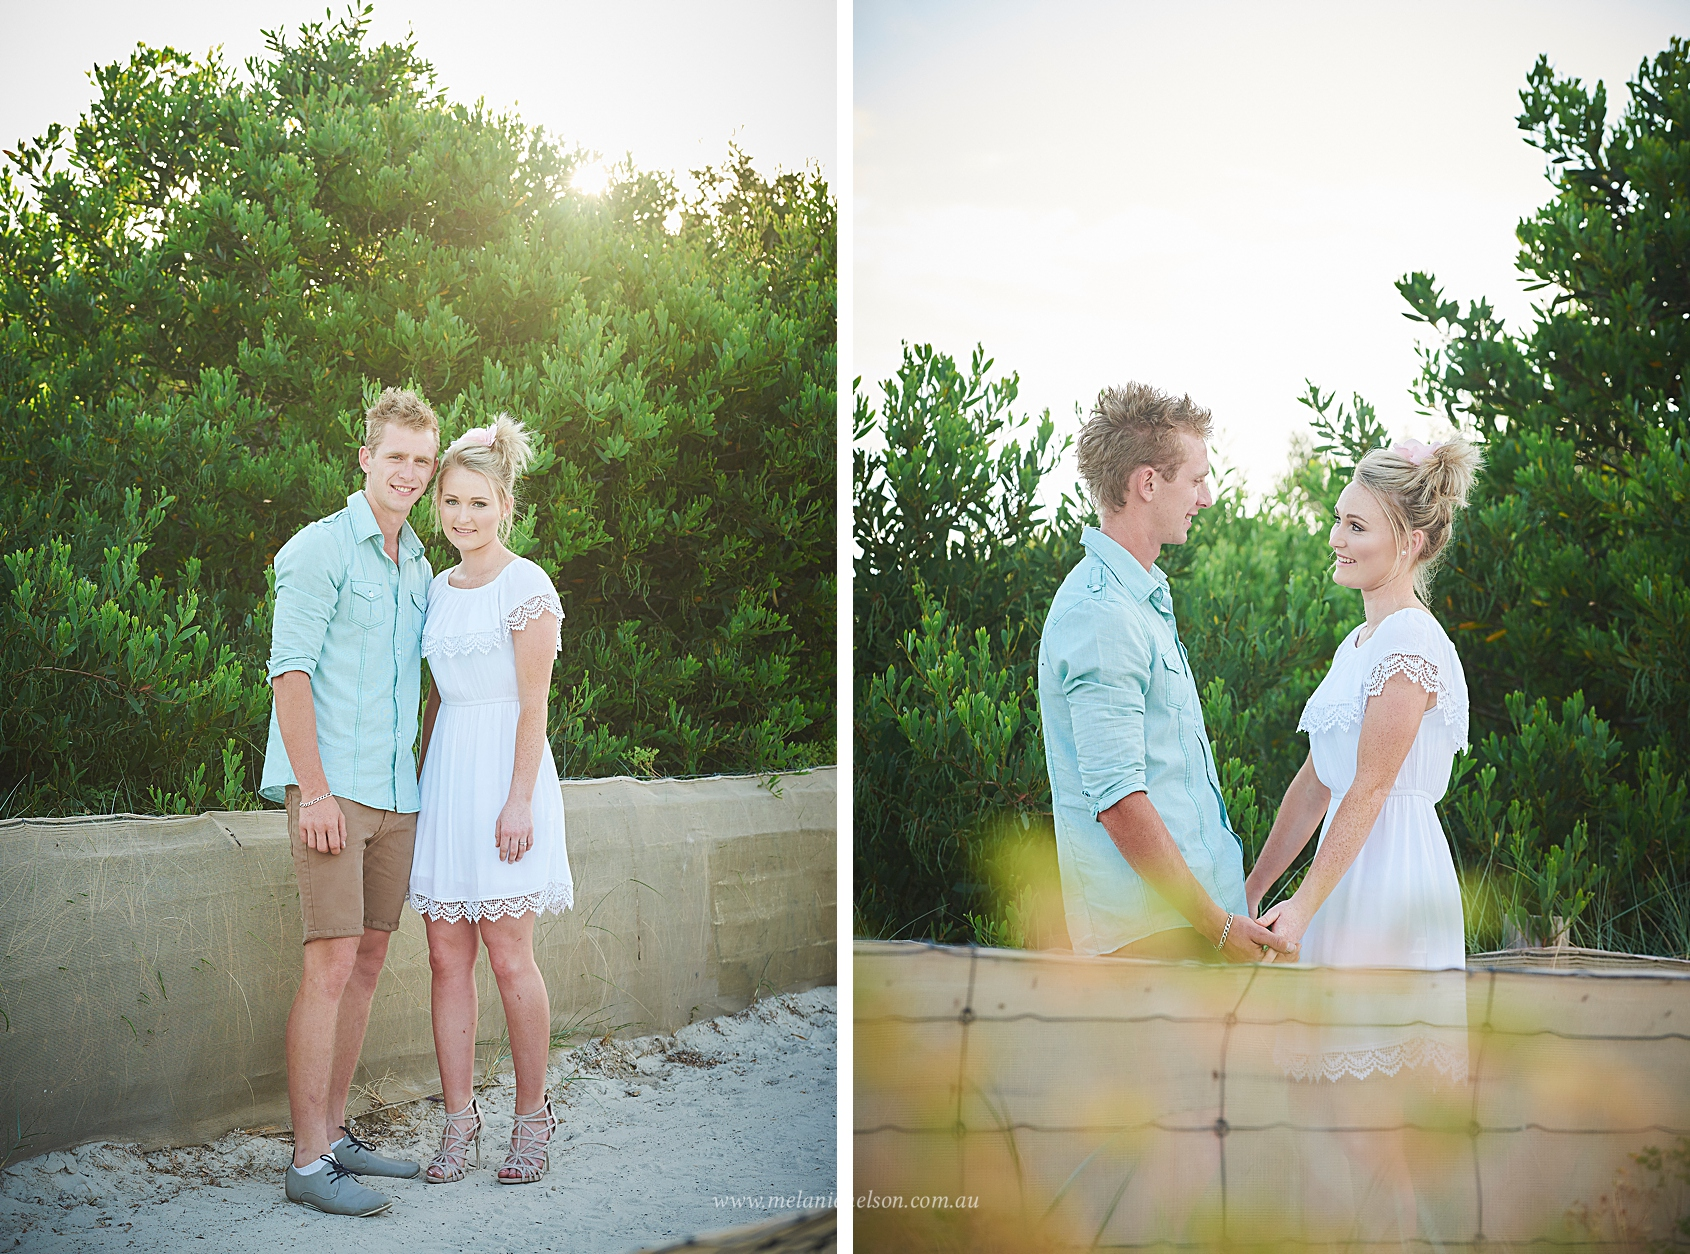 beach_engagement_photography_adelaide_0003.jpg